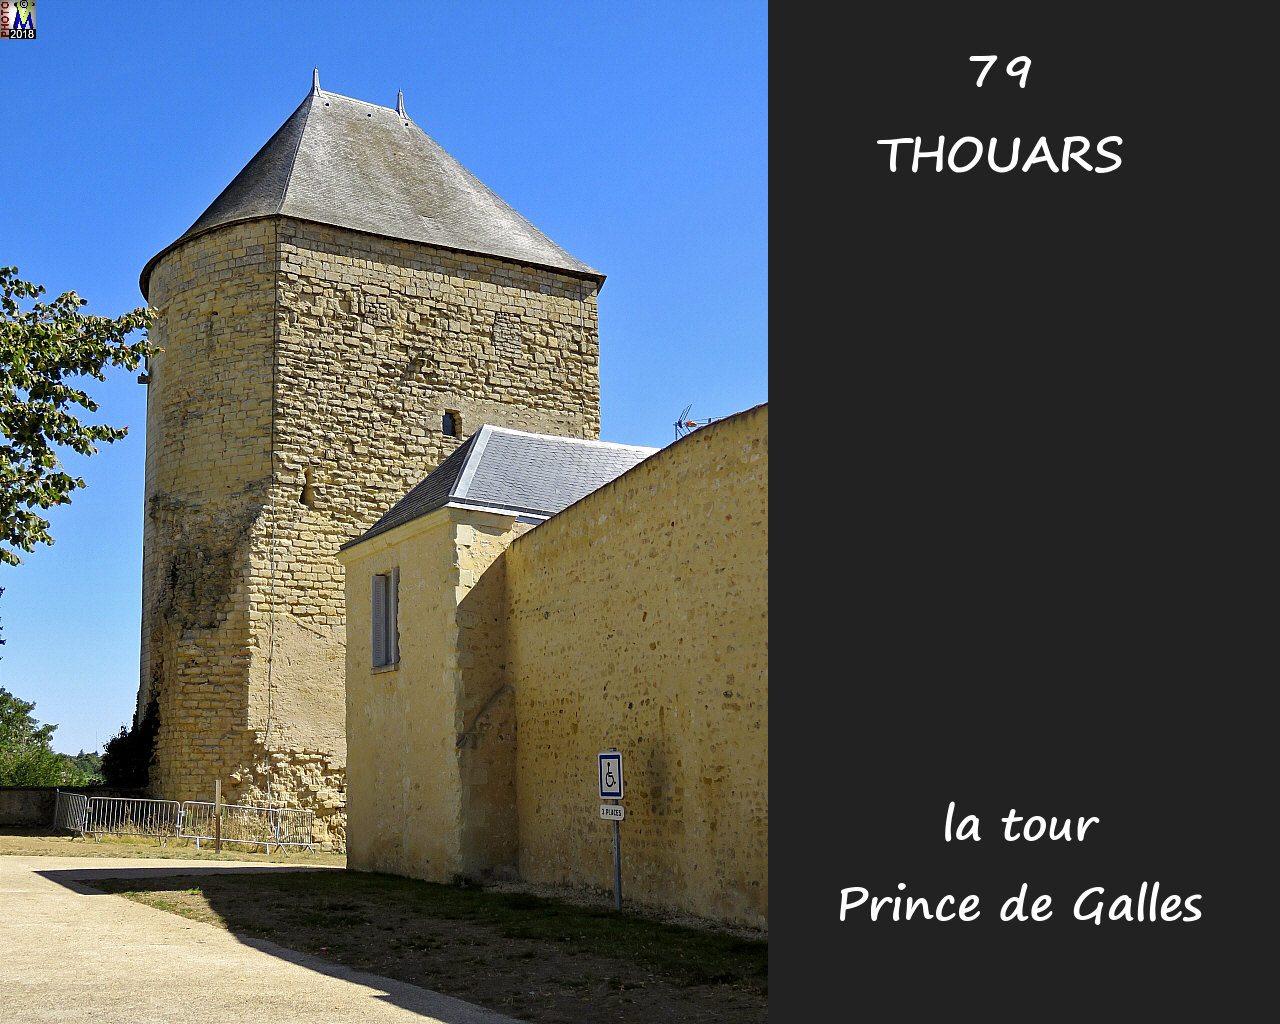 79THOUARS_TourPG_1000.jpg